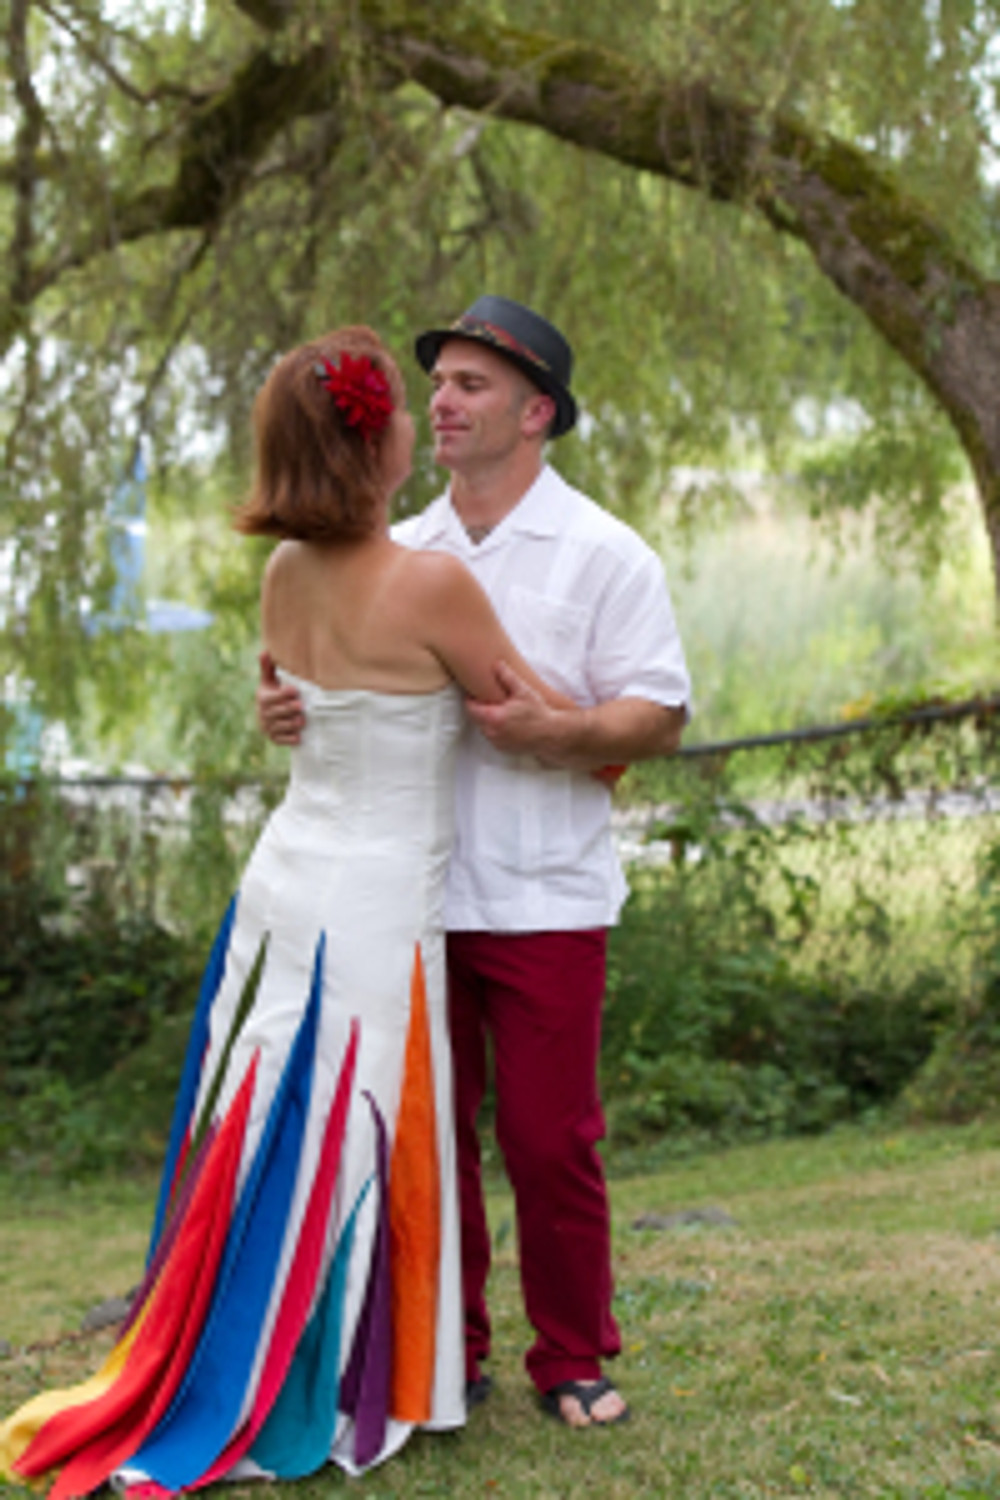 DIY wedding dress that was perfect for me, and his red pants that he wore until he accidentally poured bleach on them a year later.